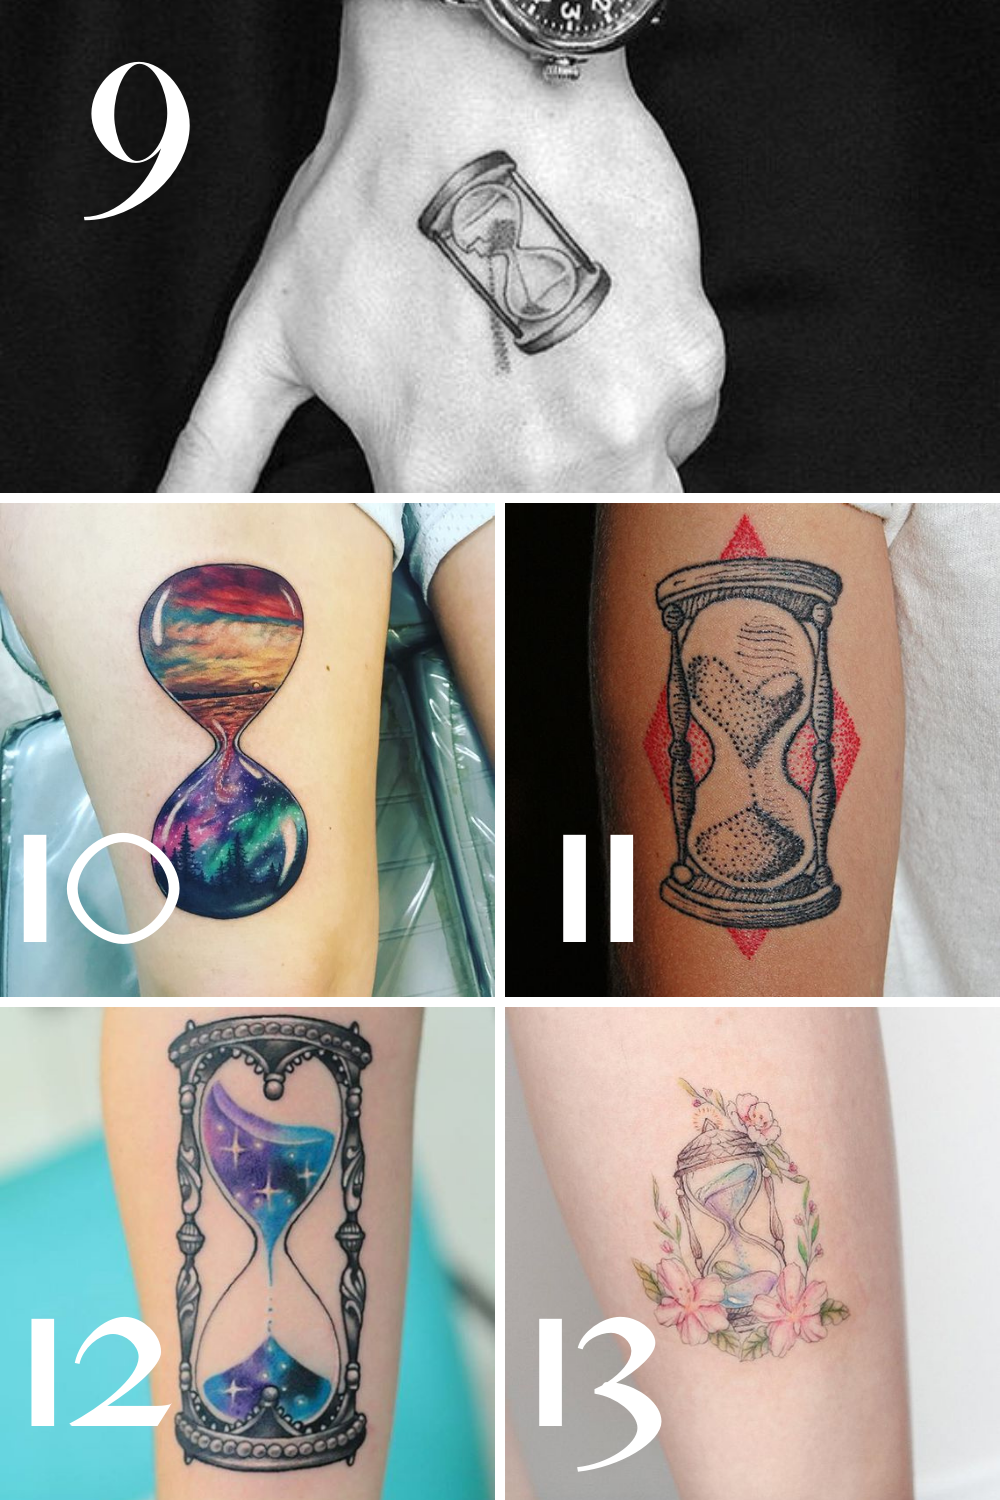 Creative Clock Tattoos for Marking Time